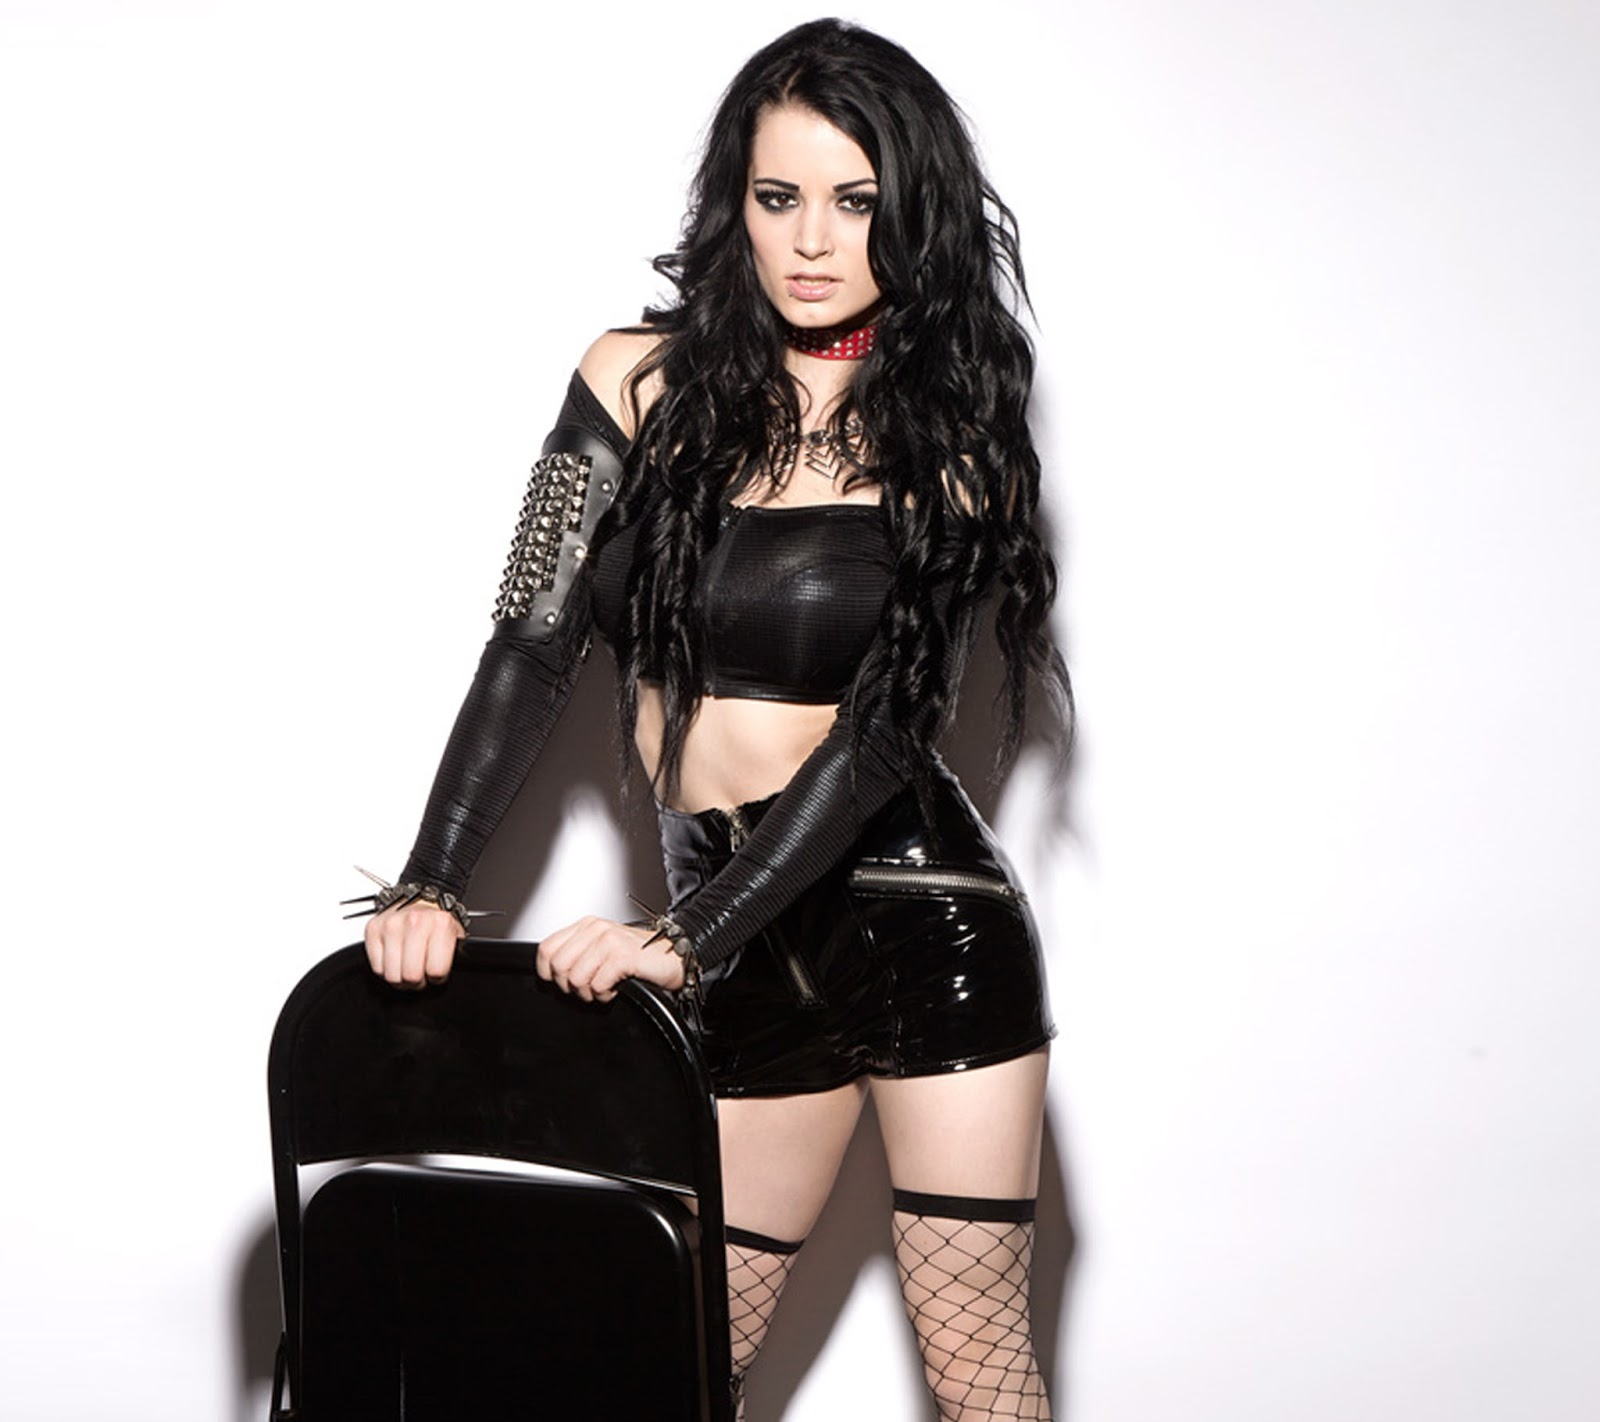 Paige hot black dress